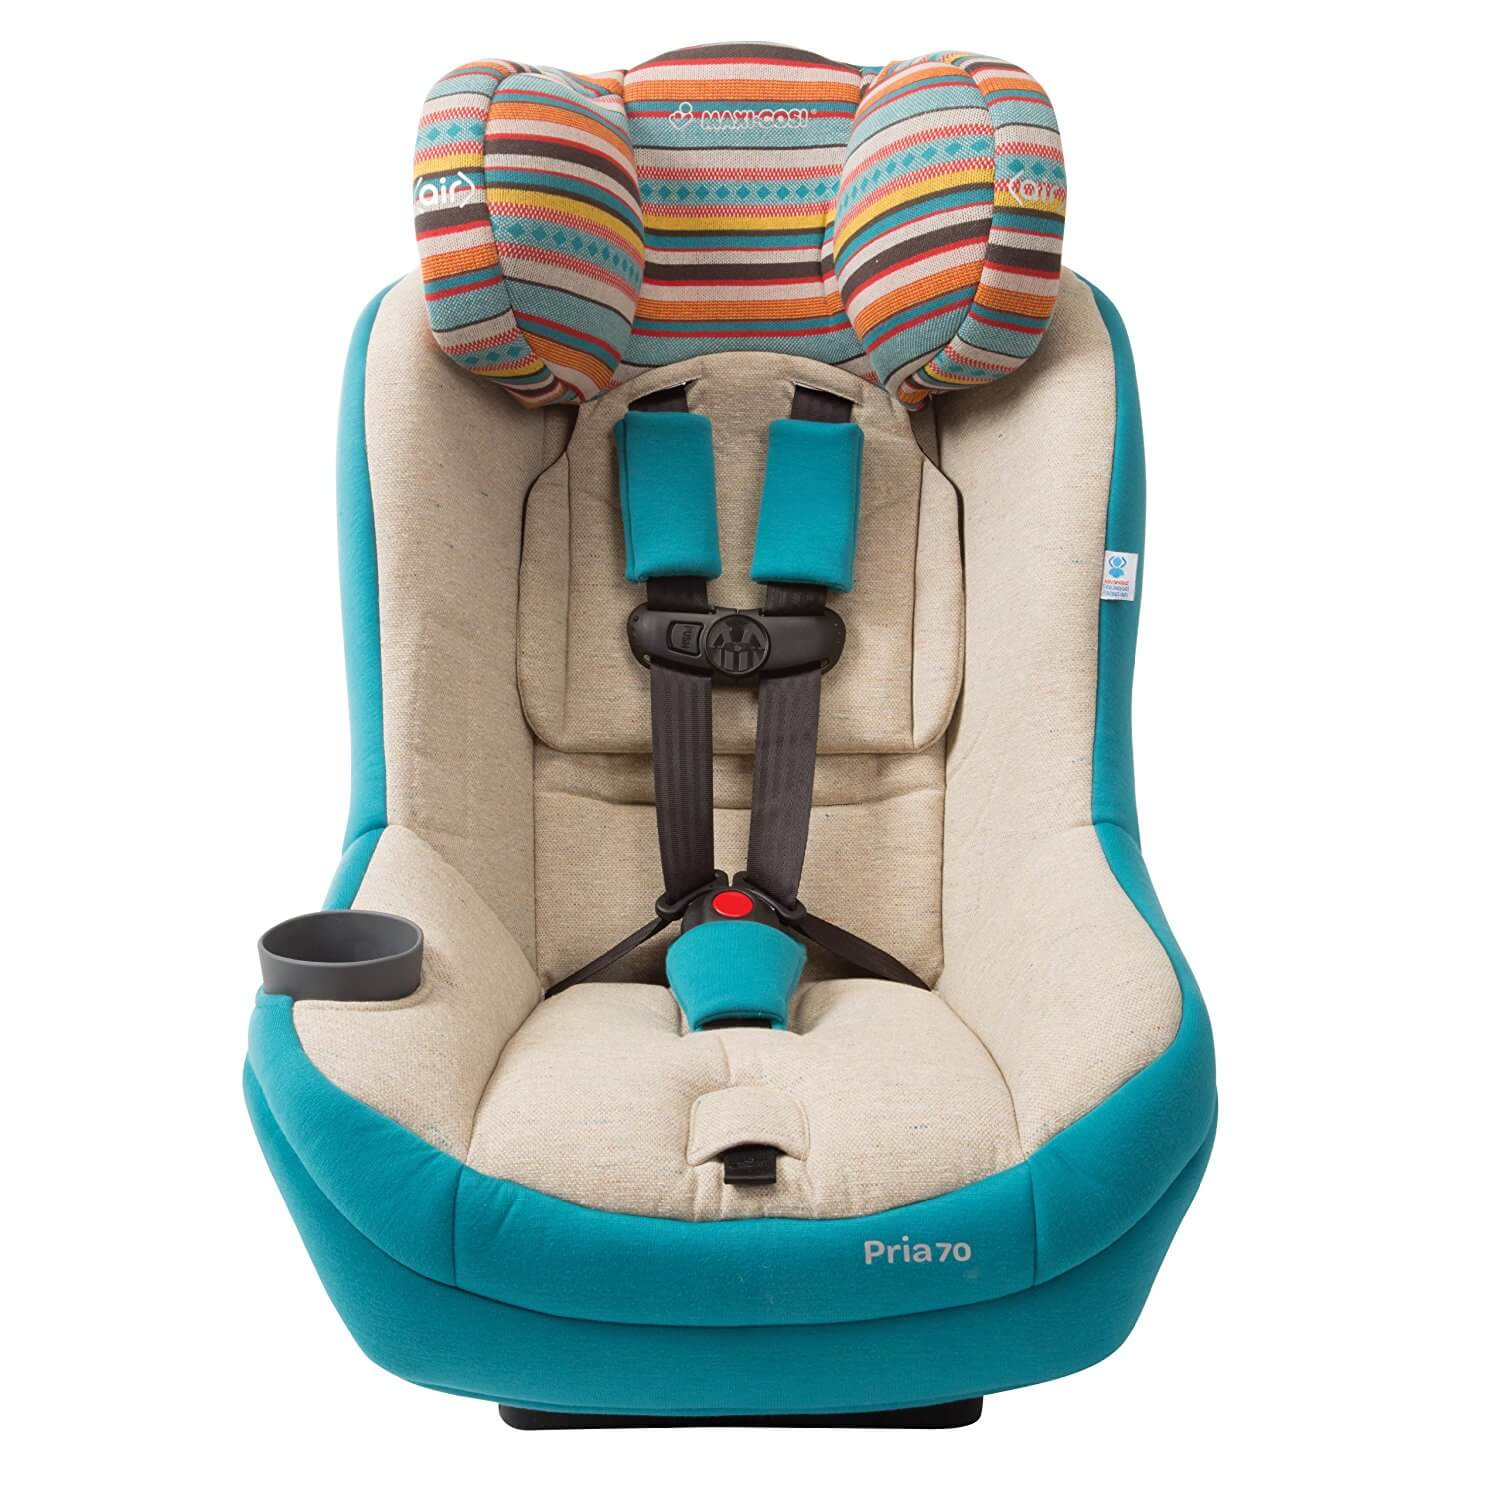 Trusted Maxi Cosi Pria 70 Reviews List Top Specs and Features